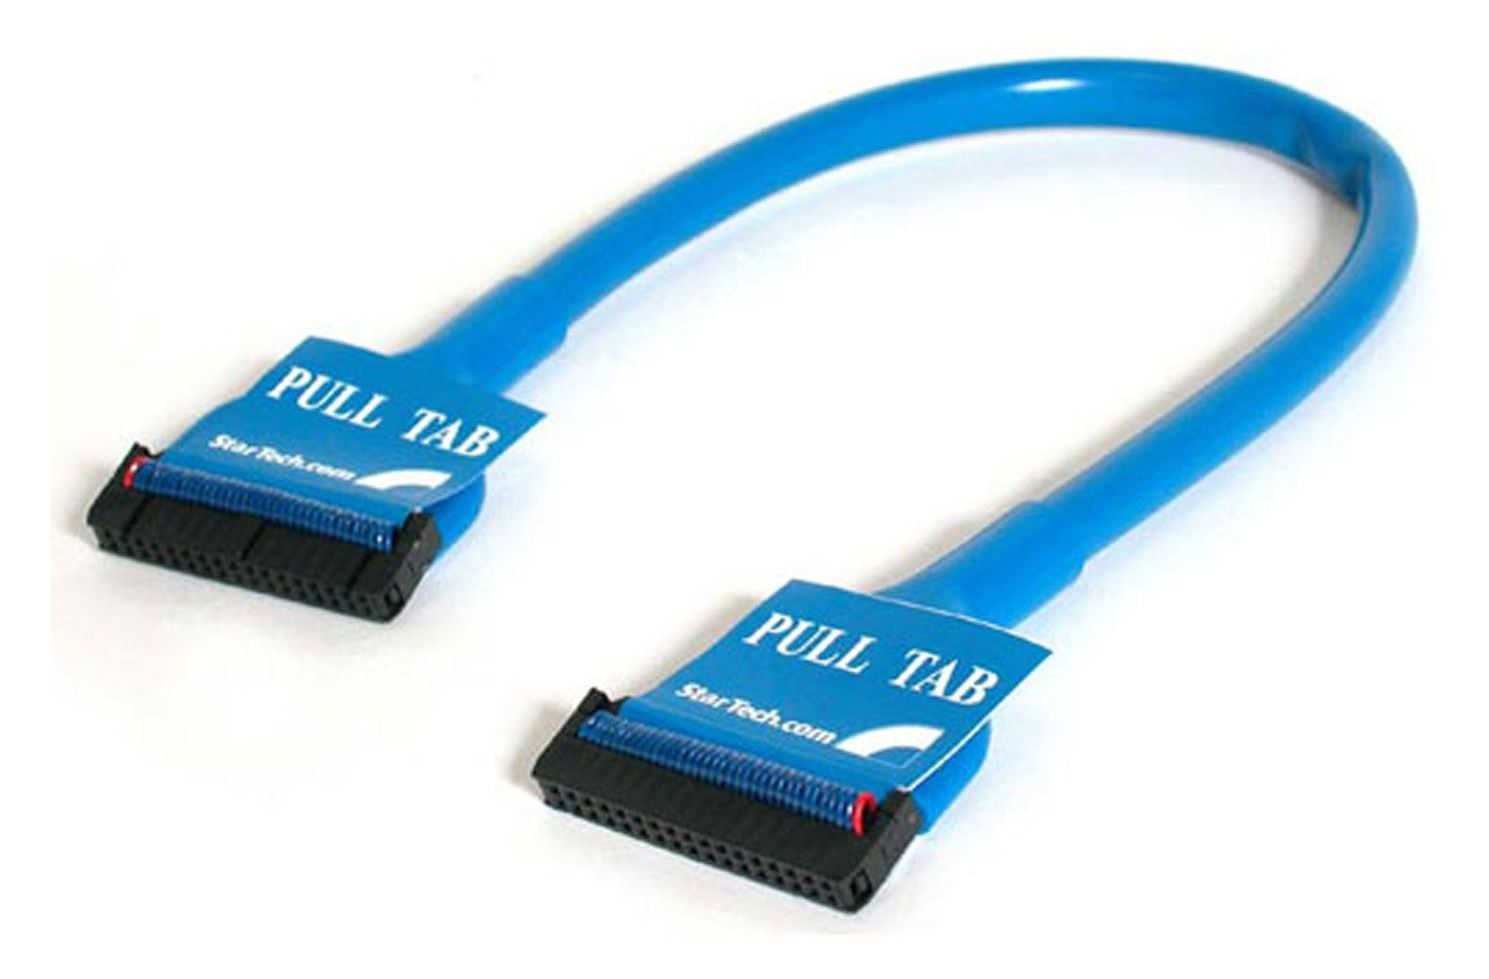 Flat Ribbon Cable- Complete details with various